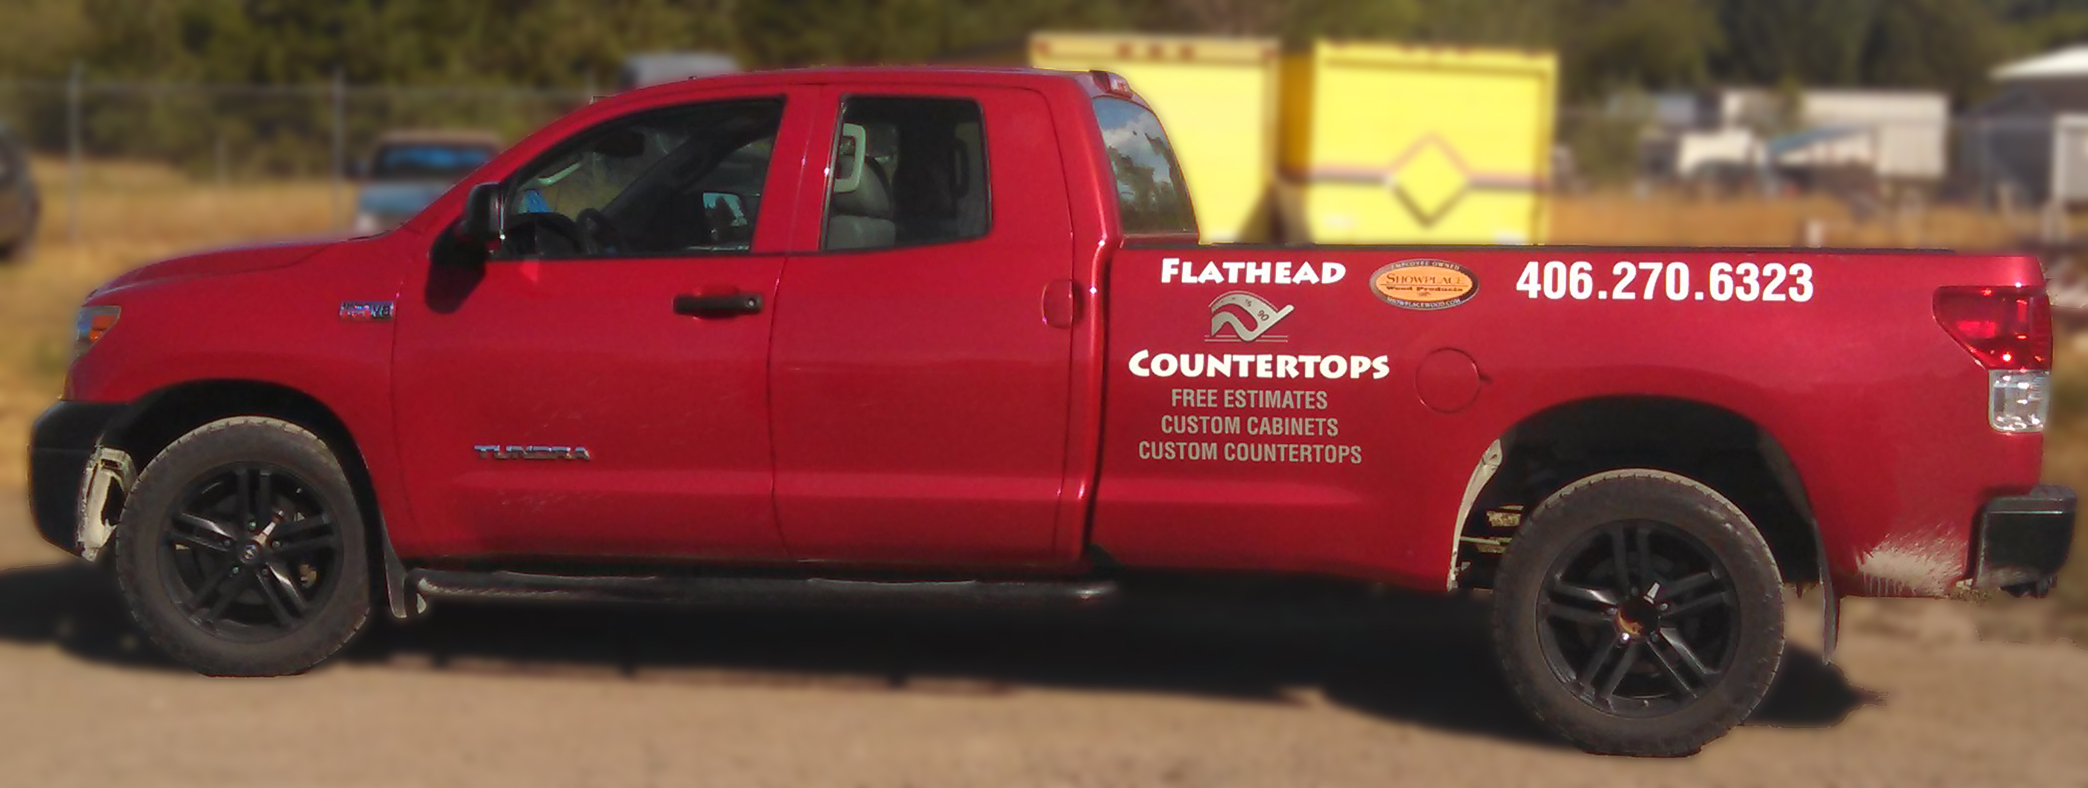 4 West Cabinetry & Flathead Countertops Vehicle Lettering.